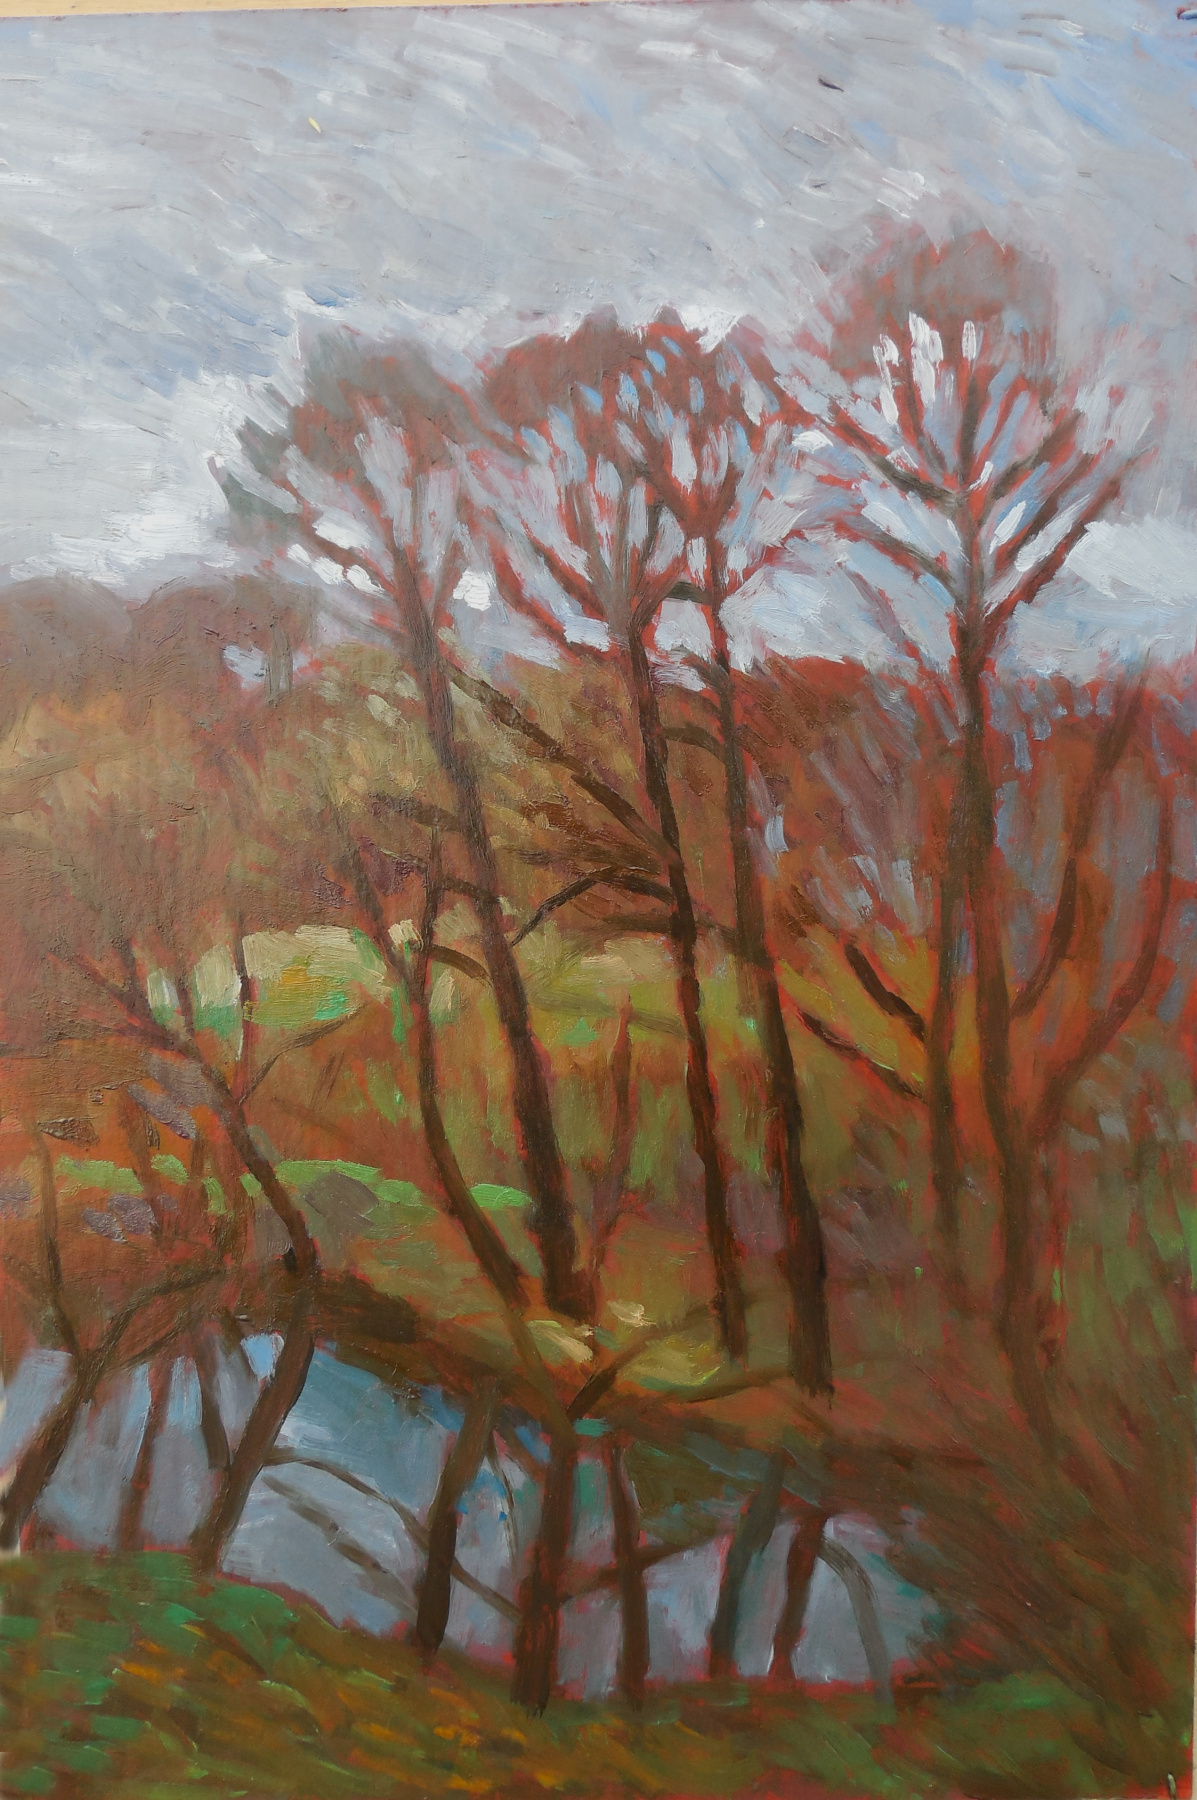 Stas Volostnych. Autumn day